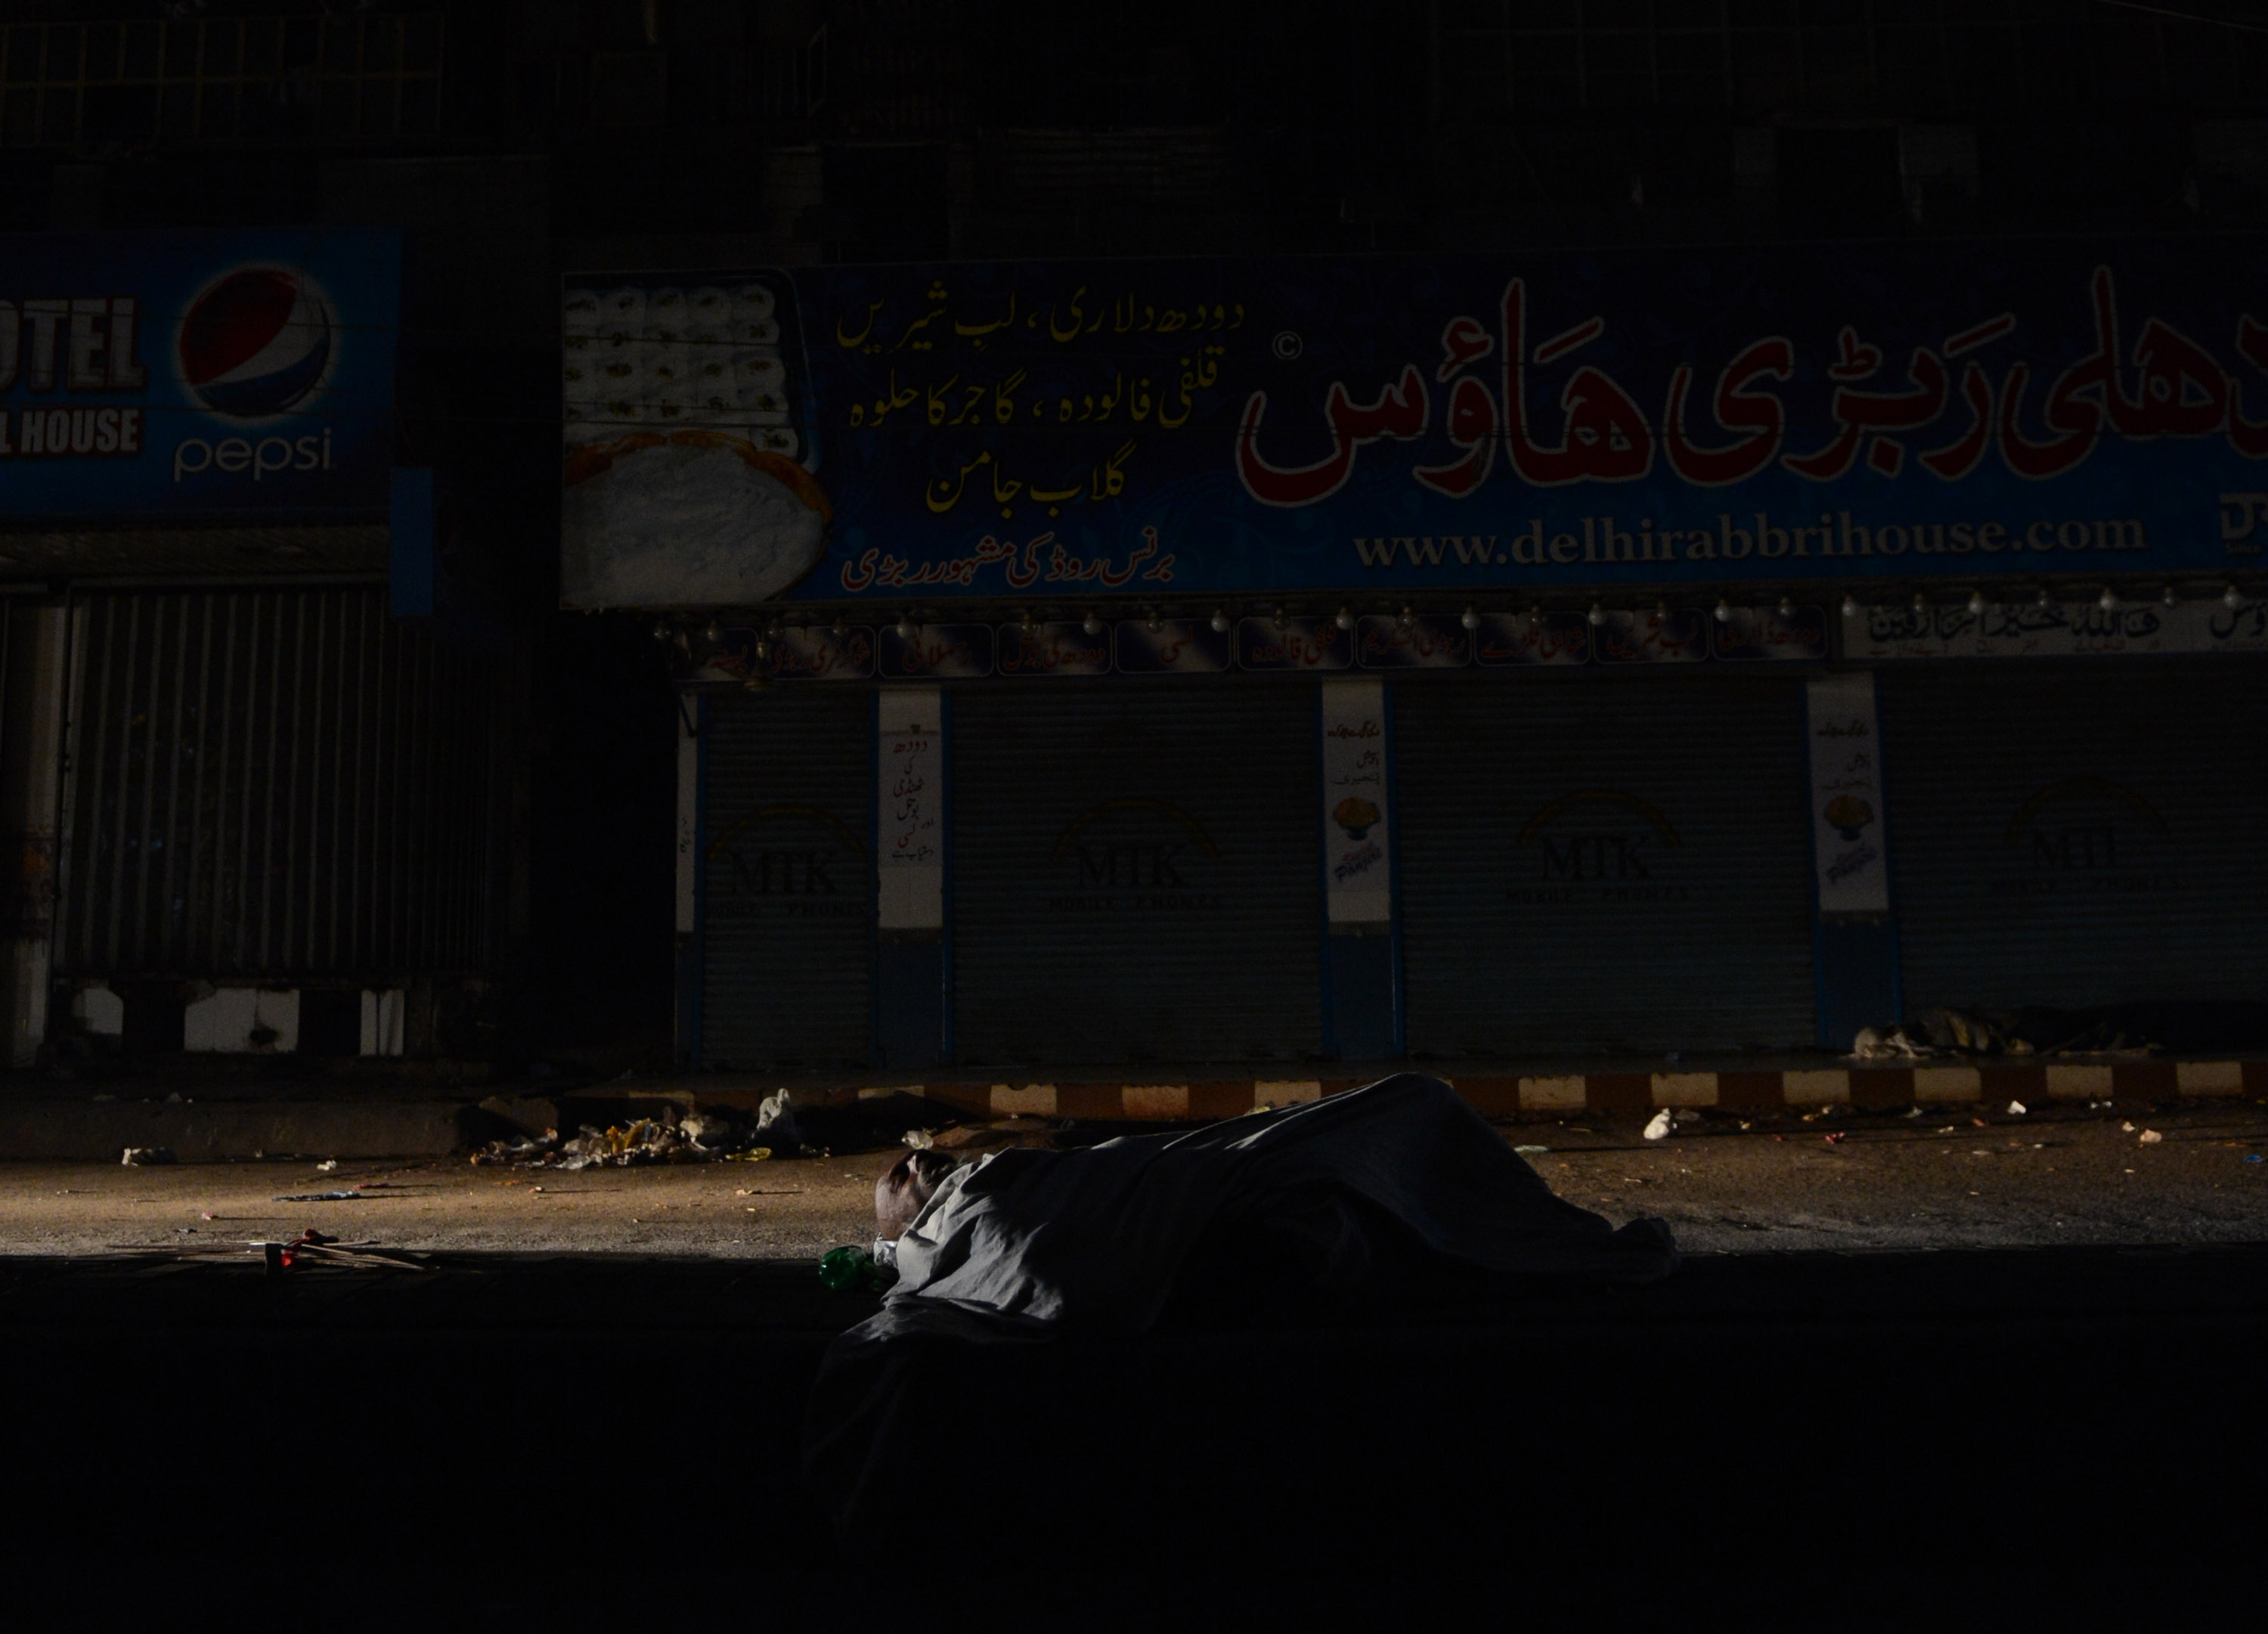 This picture taken on February 24, 2013 shows a homeless Pakistani man sleeping on a roadside during a nationwide power blackout in Karachi. Pakistan was hit by a nationwide blackout for more than two hours after the breakdown of a major plant caused power stations to stop working across the country, officials said on February 25.  AFP PHOTO/Asif HASSAN